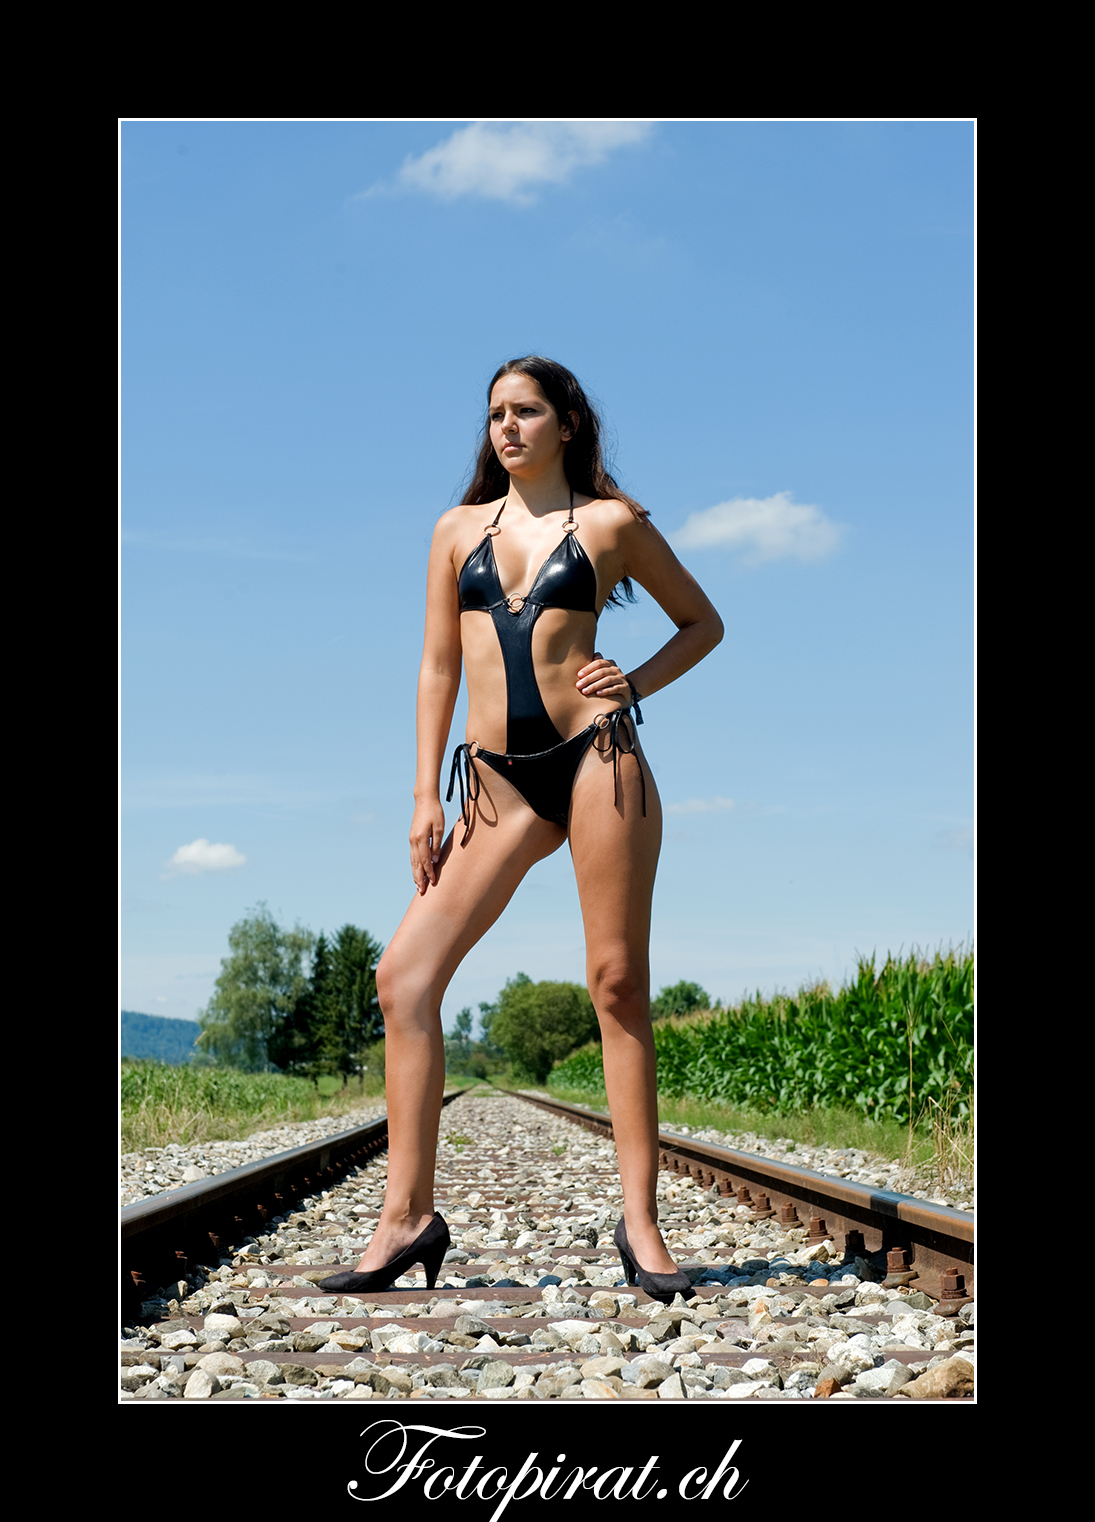 Fotoshooting On Location, Monokini, Modelagentur, Fotomodel